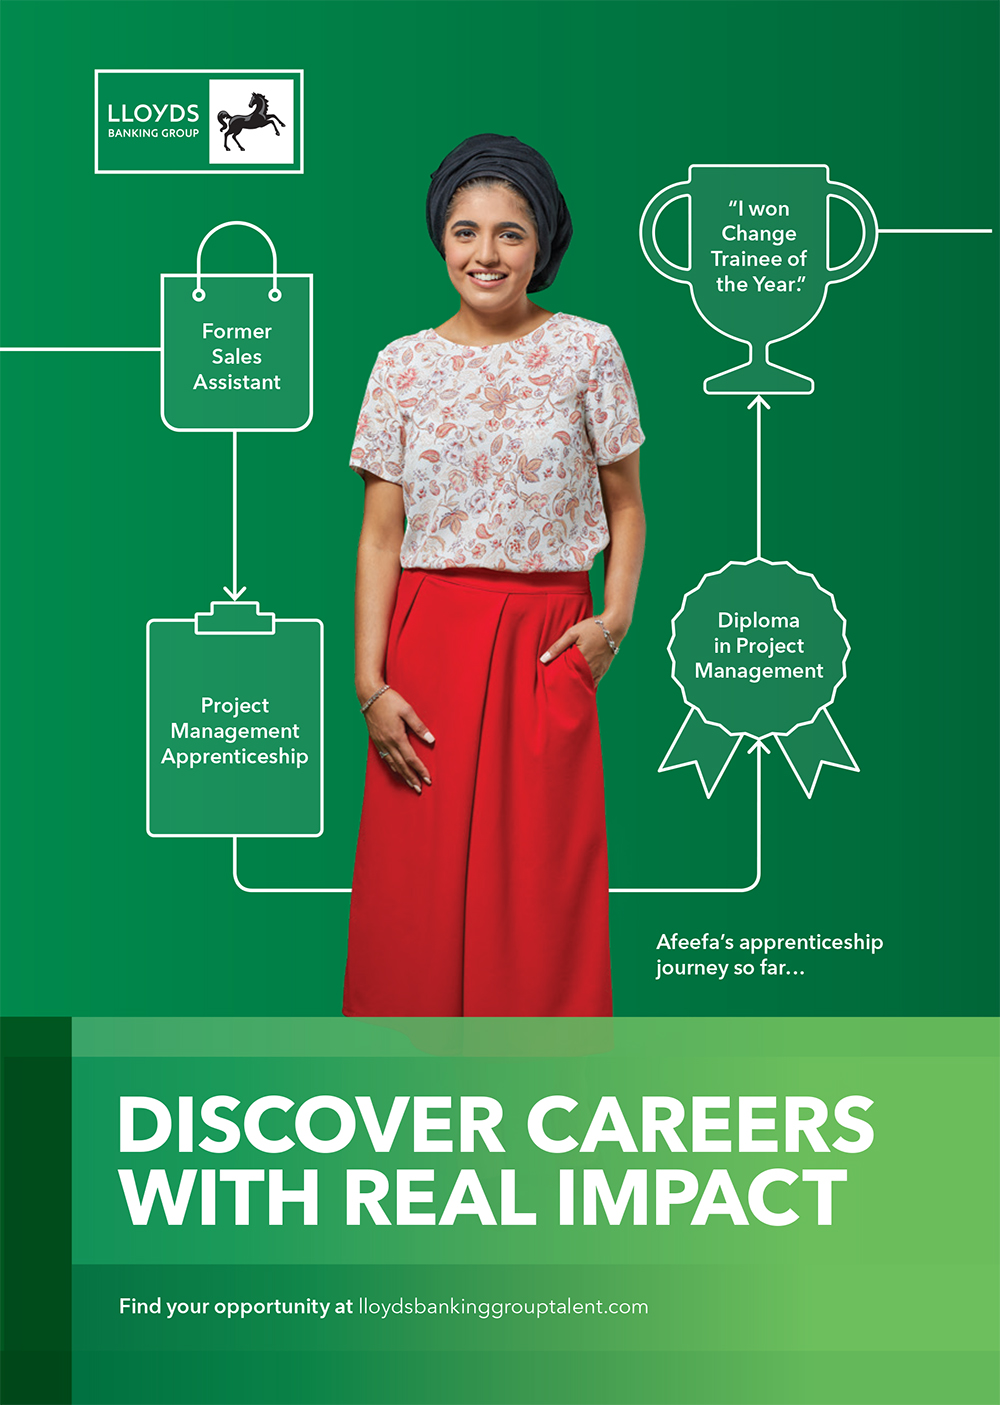 Discover careers with real impact